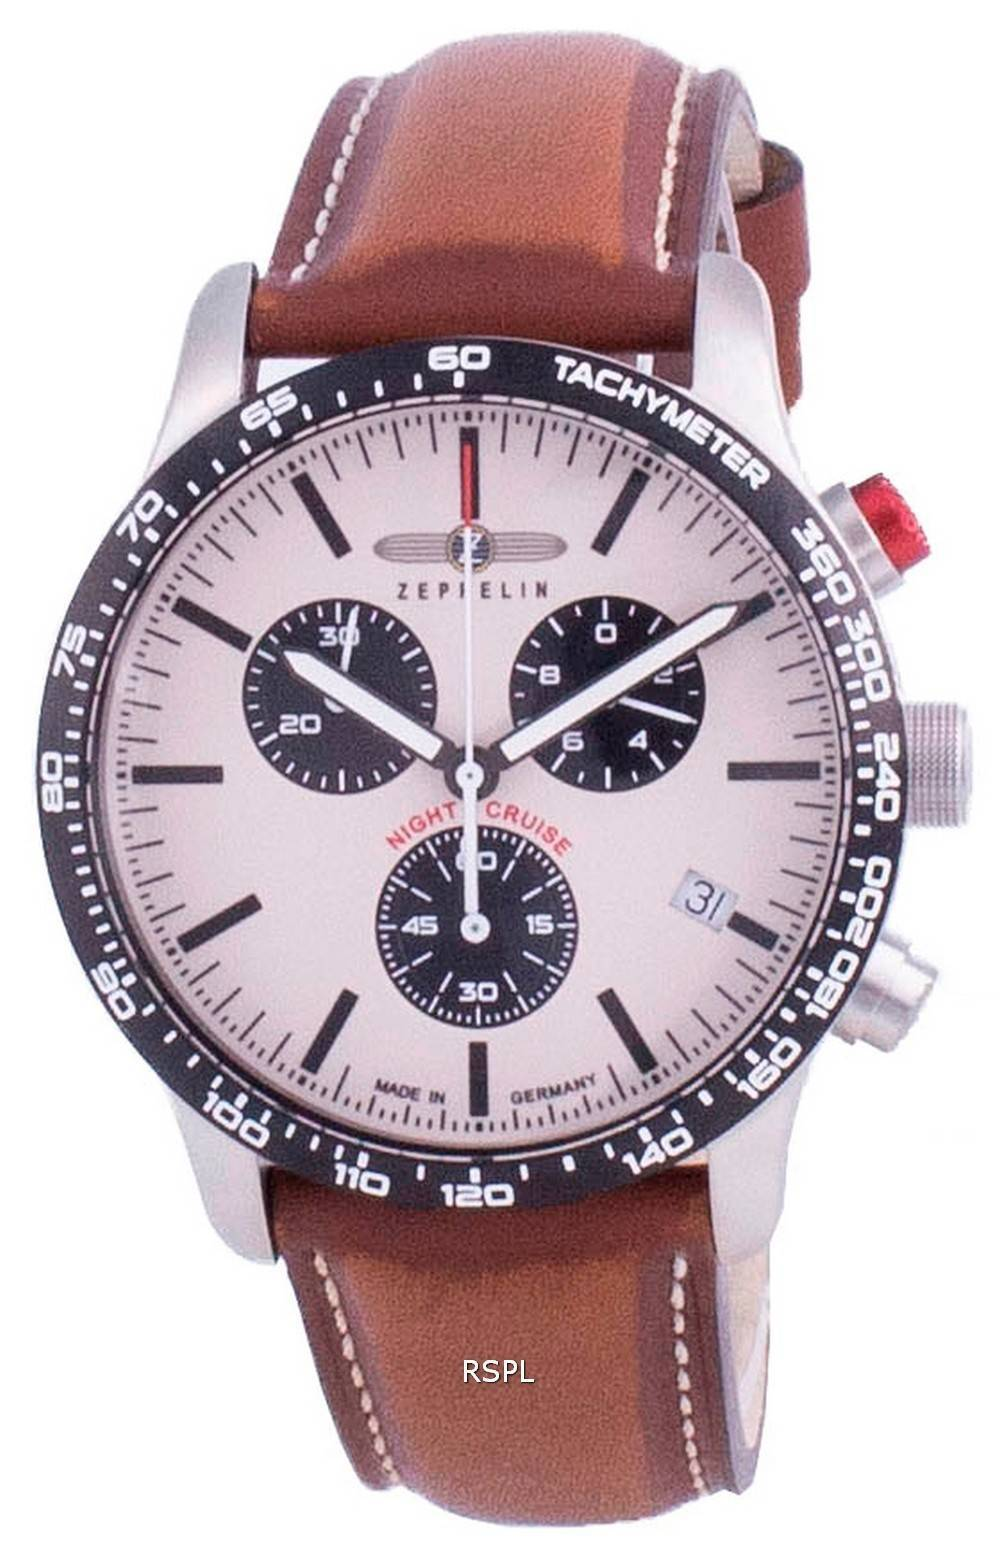 Zeppelin Night Cruise Chronograph Quarz 7296-1 72961 100M Herrenuhr